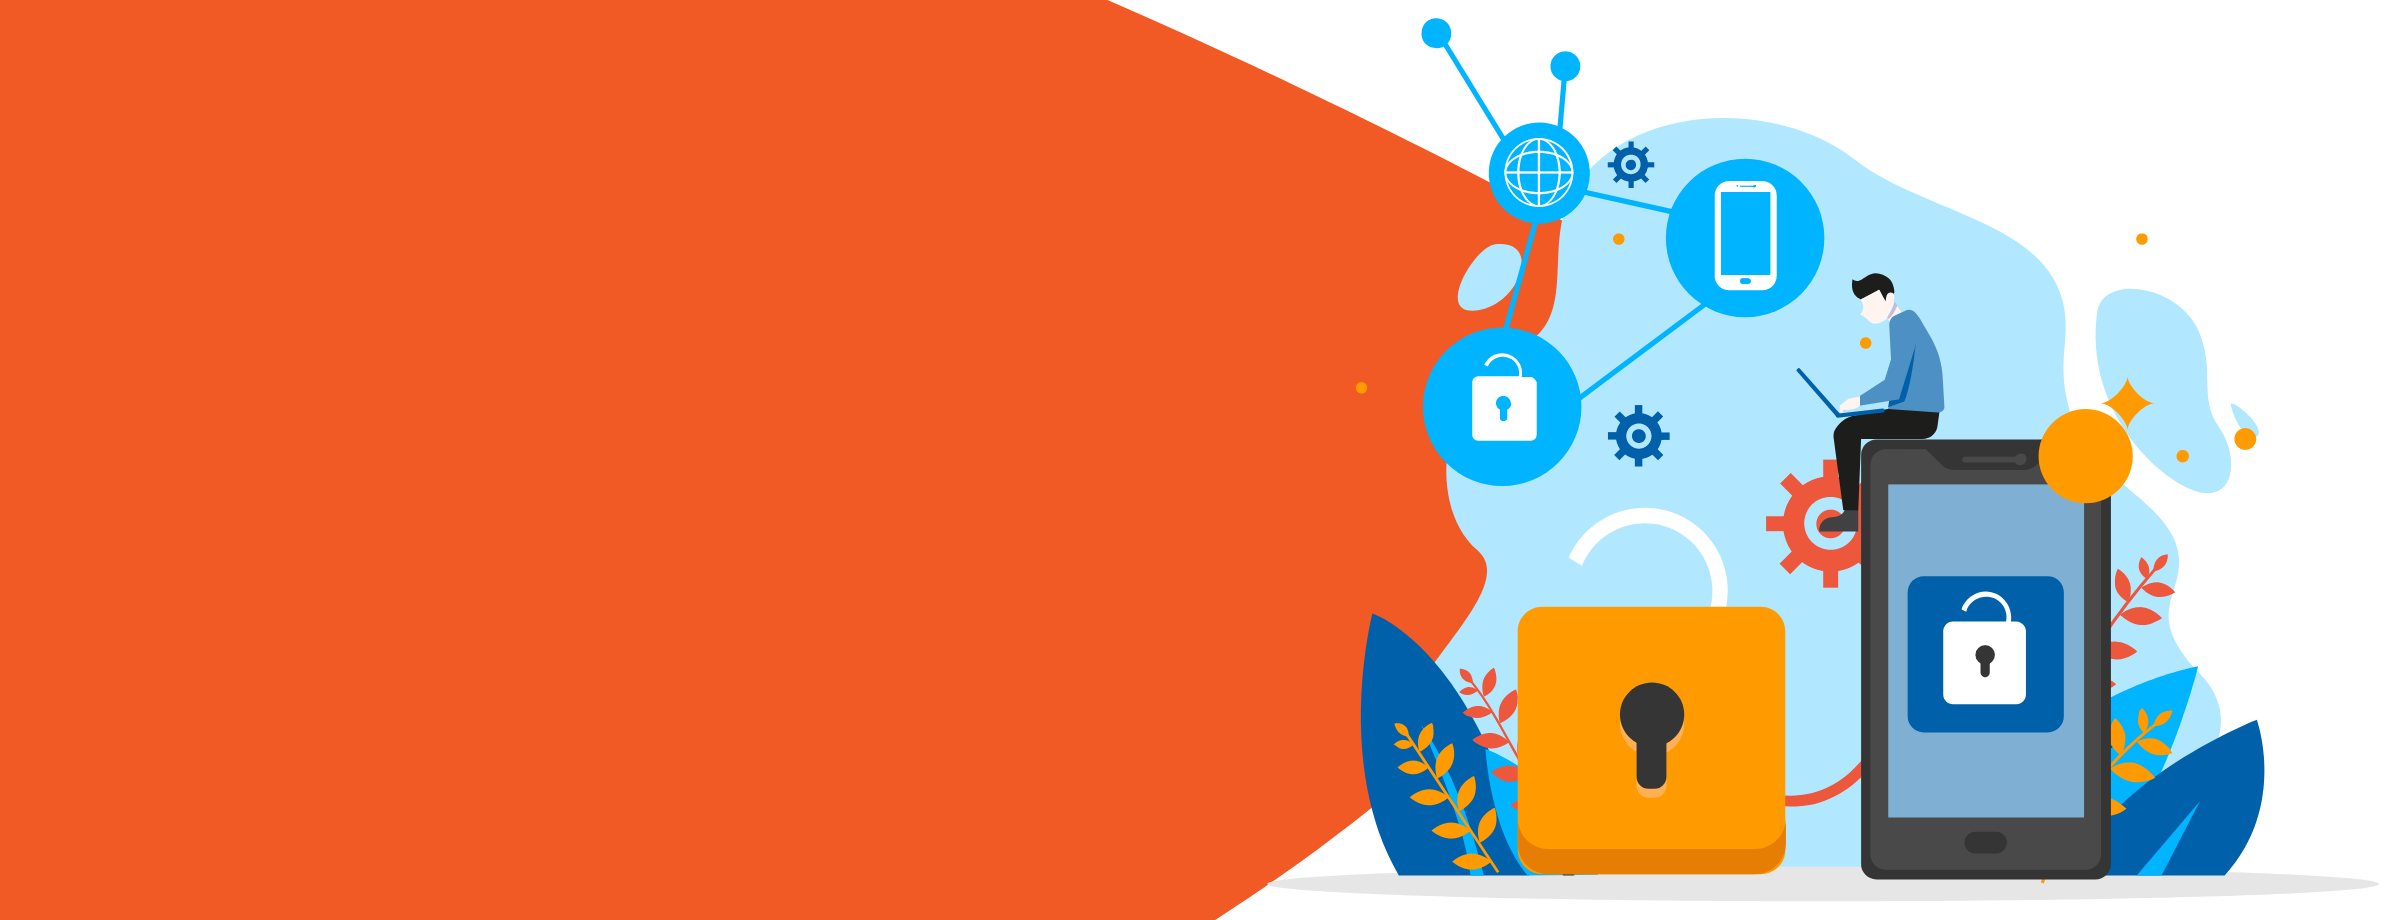 Microsoft Enterprise Mobility + Security: 3 features to protect Microsoft 365 tenants